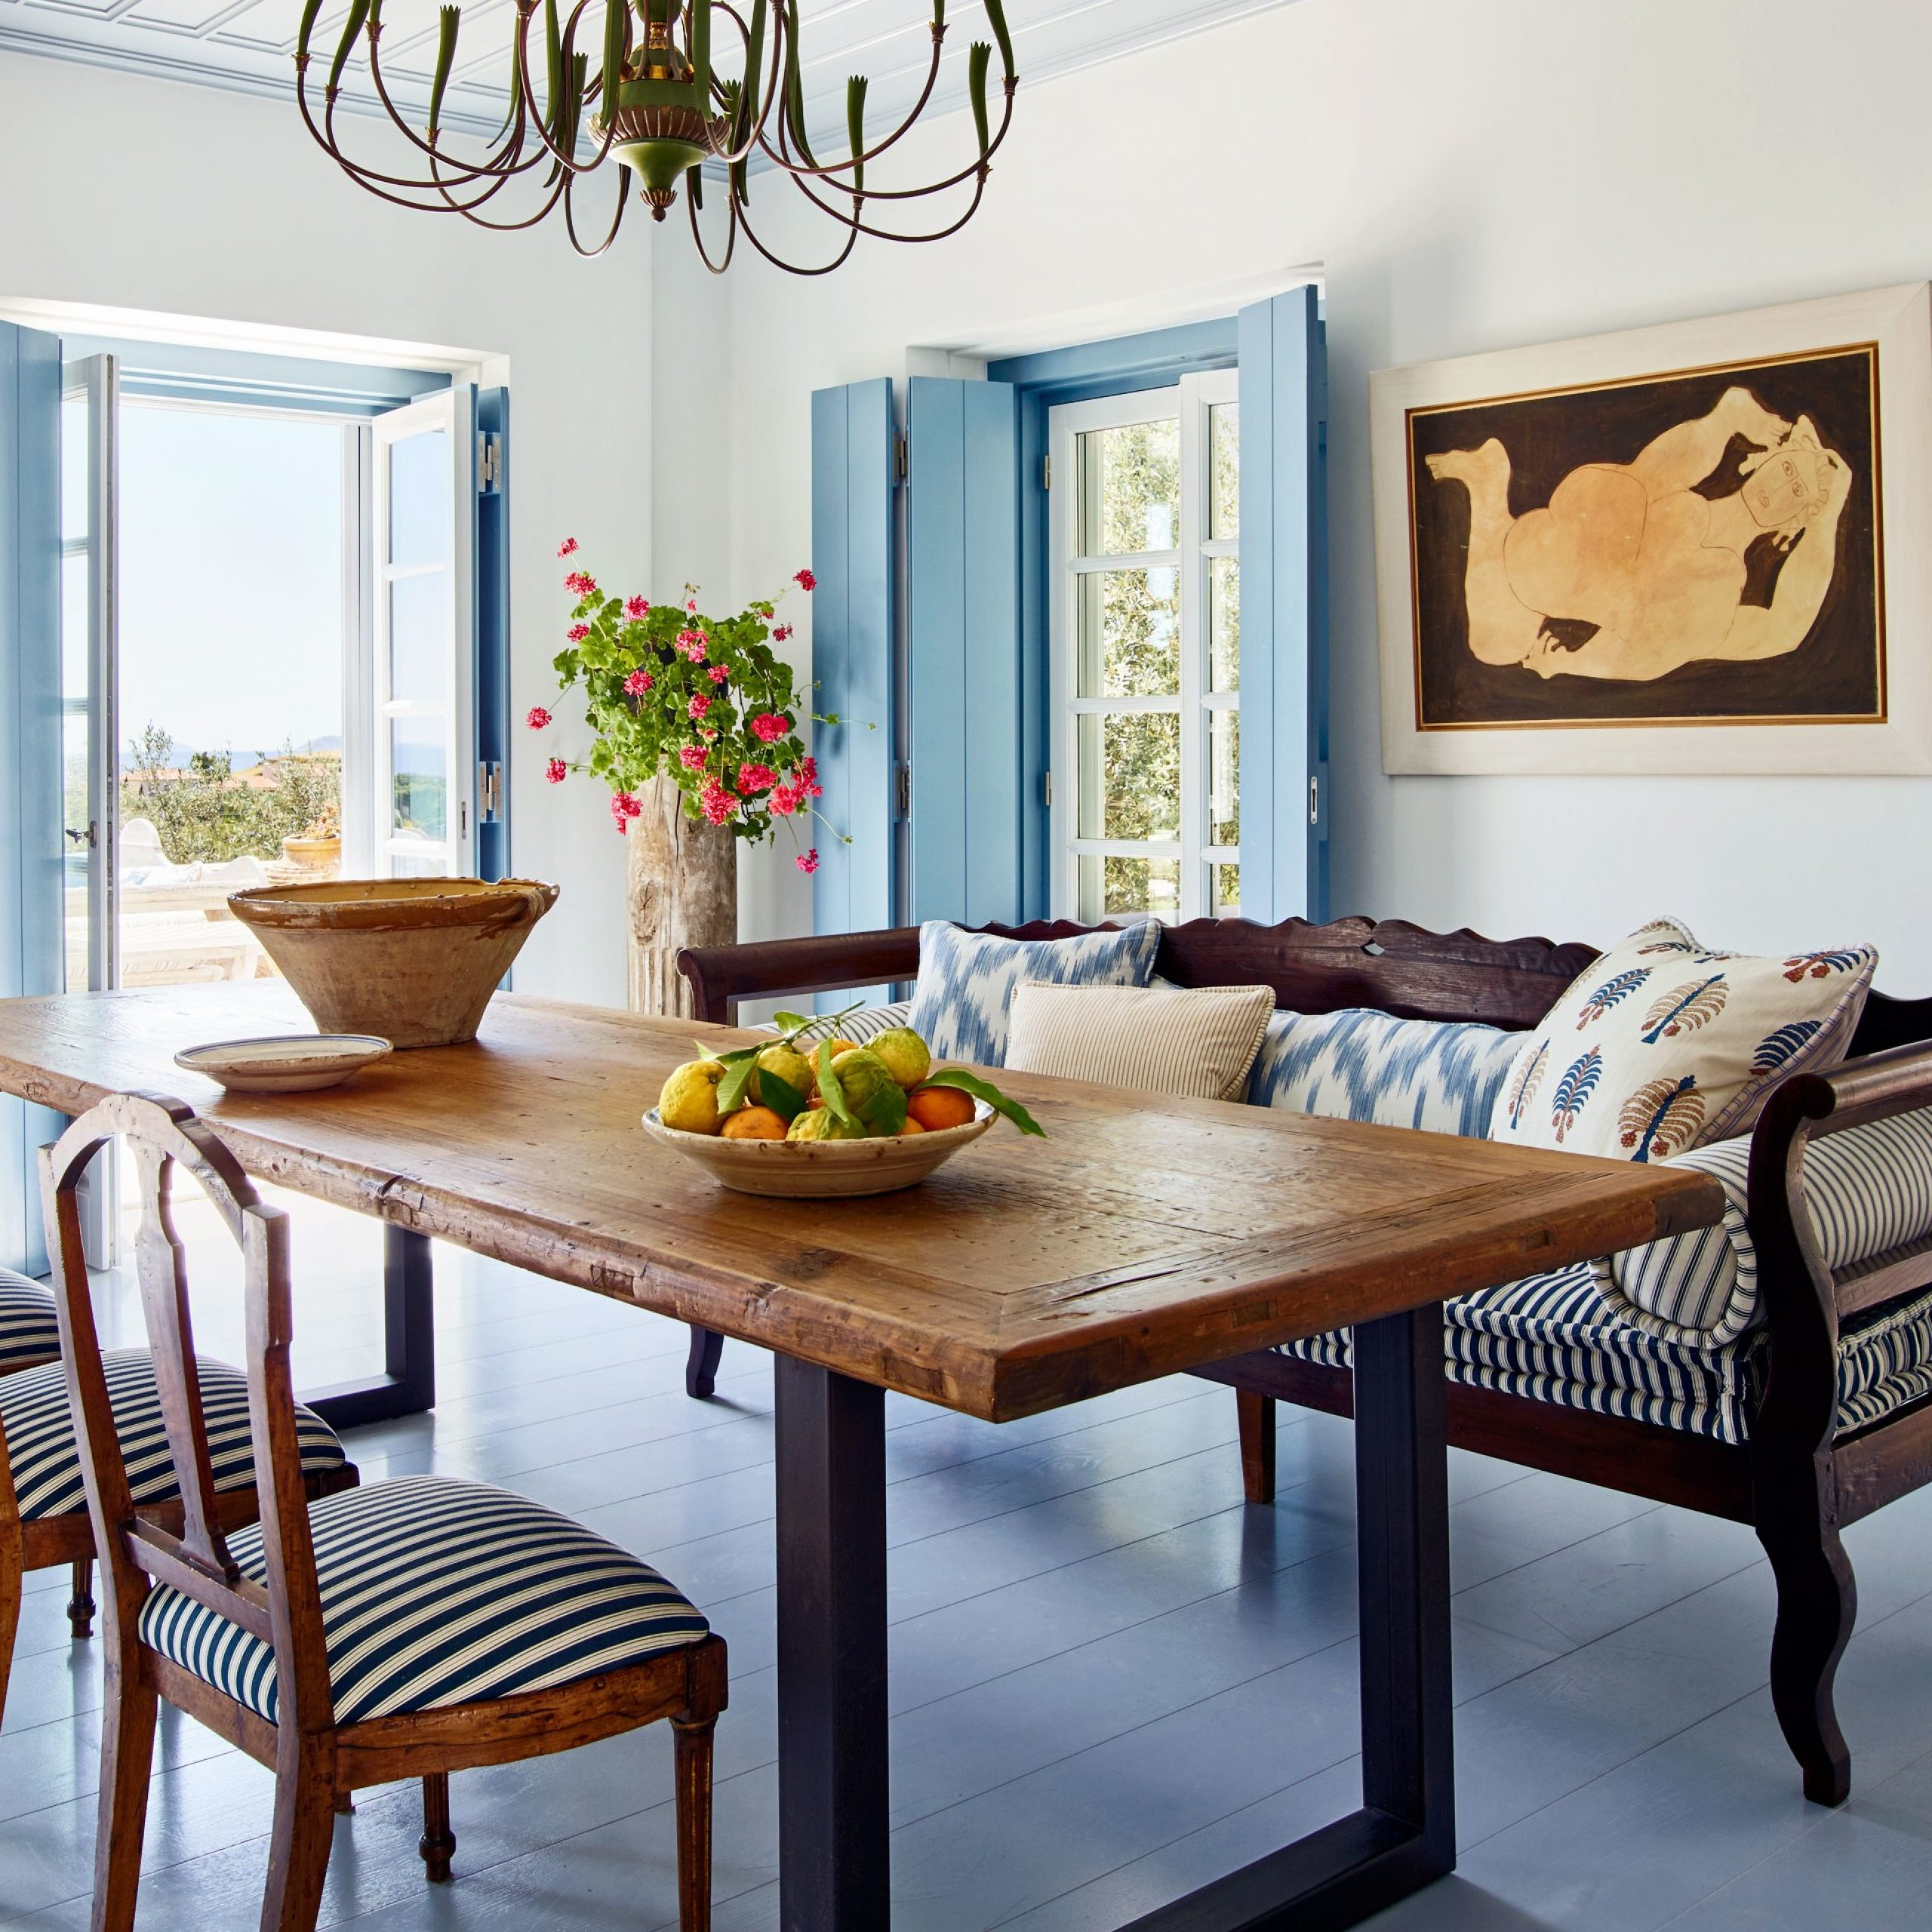 Walnut And Antique White Finish Contemporary Country Dining Tables Regarding Latest Tips To Mix And Match Dining Room Chairs Successfully (View 8 of 30)